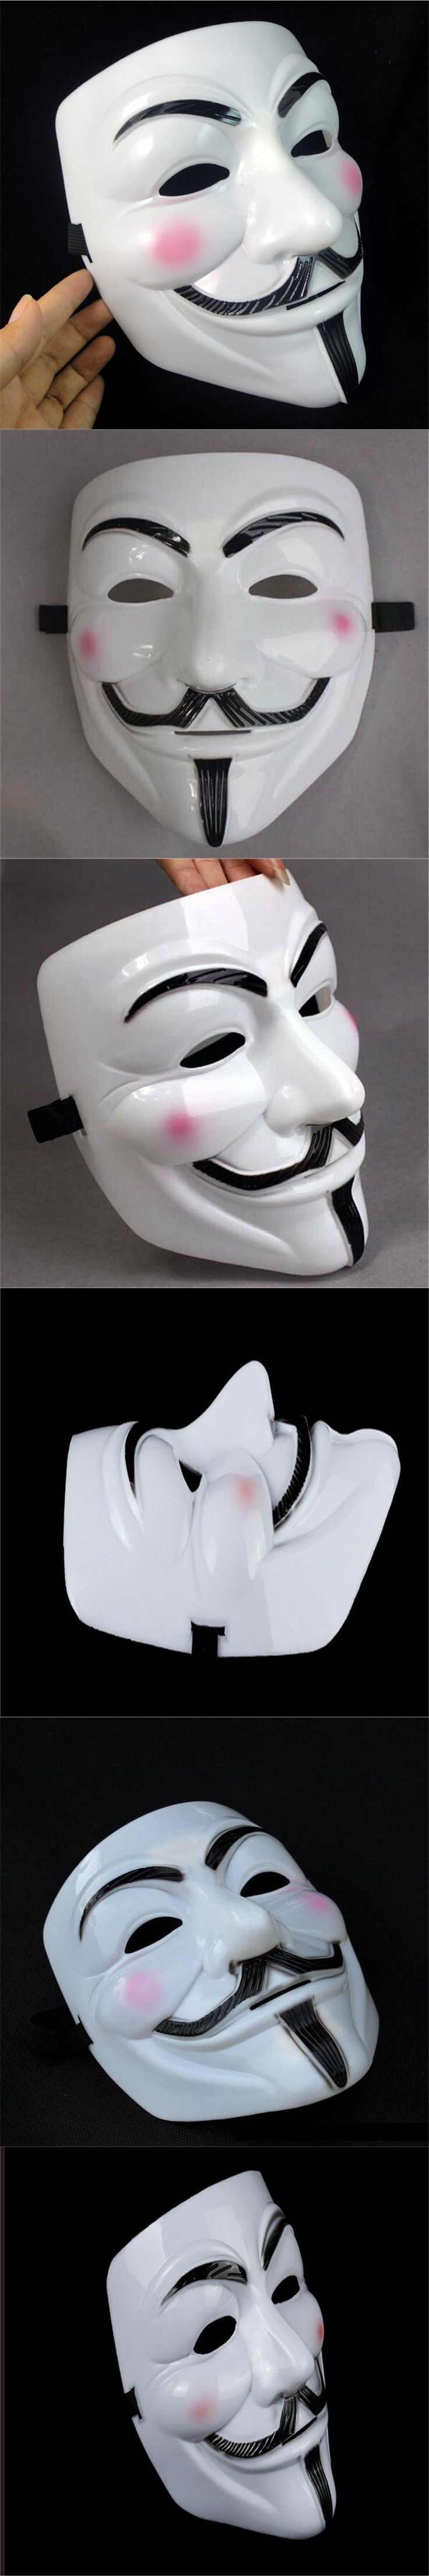 HOT NEW V For Vendetta Masks scary mask Guy Fawkes Halloween Party Mask slipknot masque Fan Cosplay SP Masquerade Horror Grimace